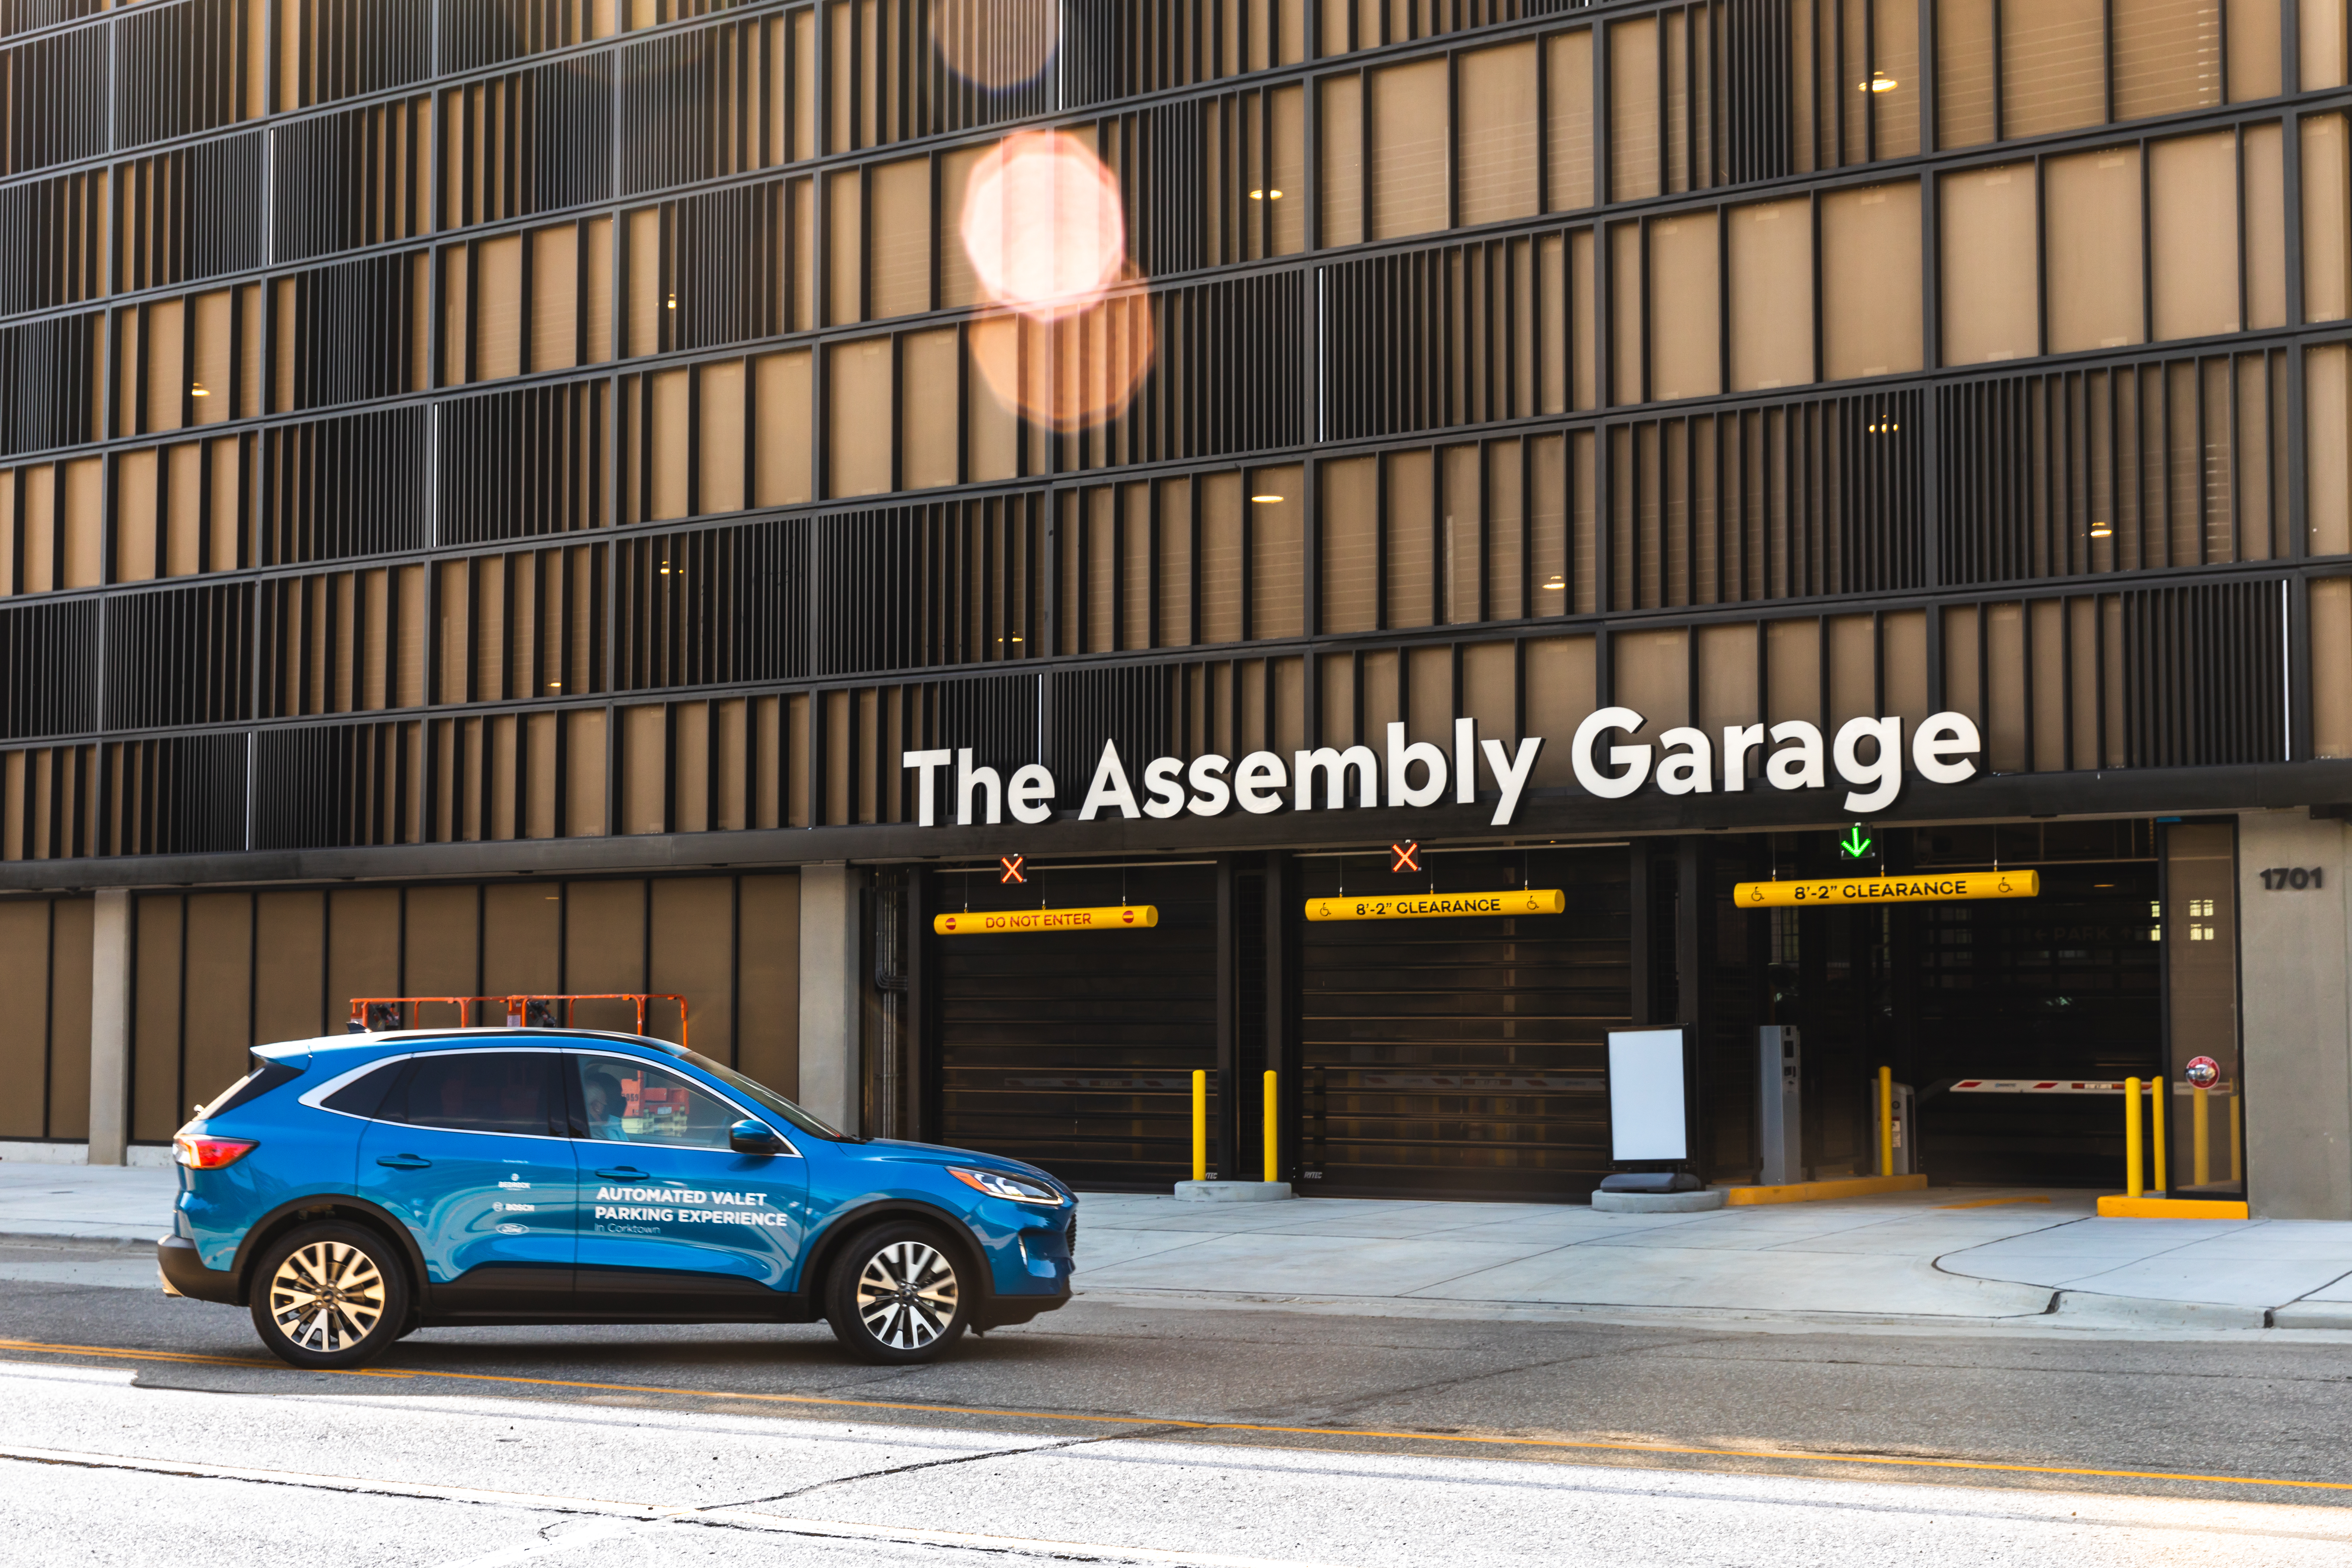 Automated Valet Parking with Ford, Bedrock, and Bosch